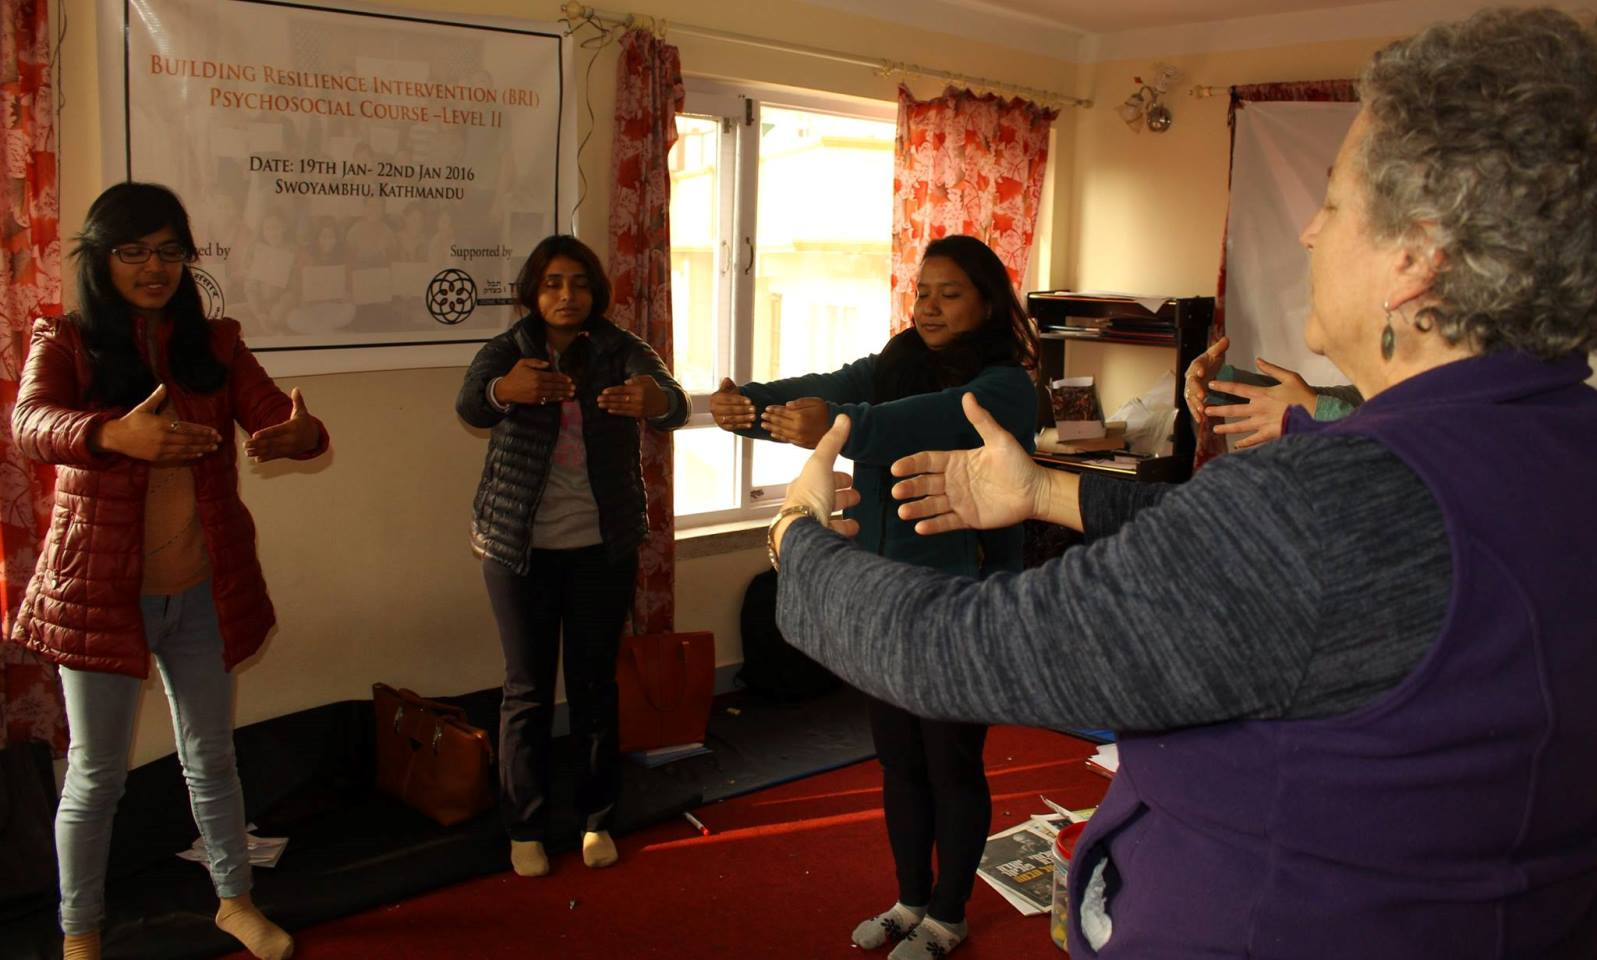 Naomi Baum, retired founder-director of the Resilience Unit at theIsrael Center for the Treatment of Psychotrauma of Jerusalem's Herzog Hospital, teaching resilience techniques to Nepalese women on behalf of Tevel b'Tzedek. Photo via Facebook